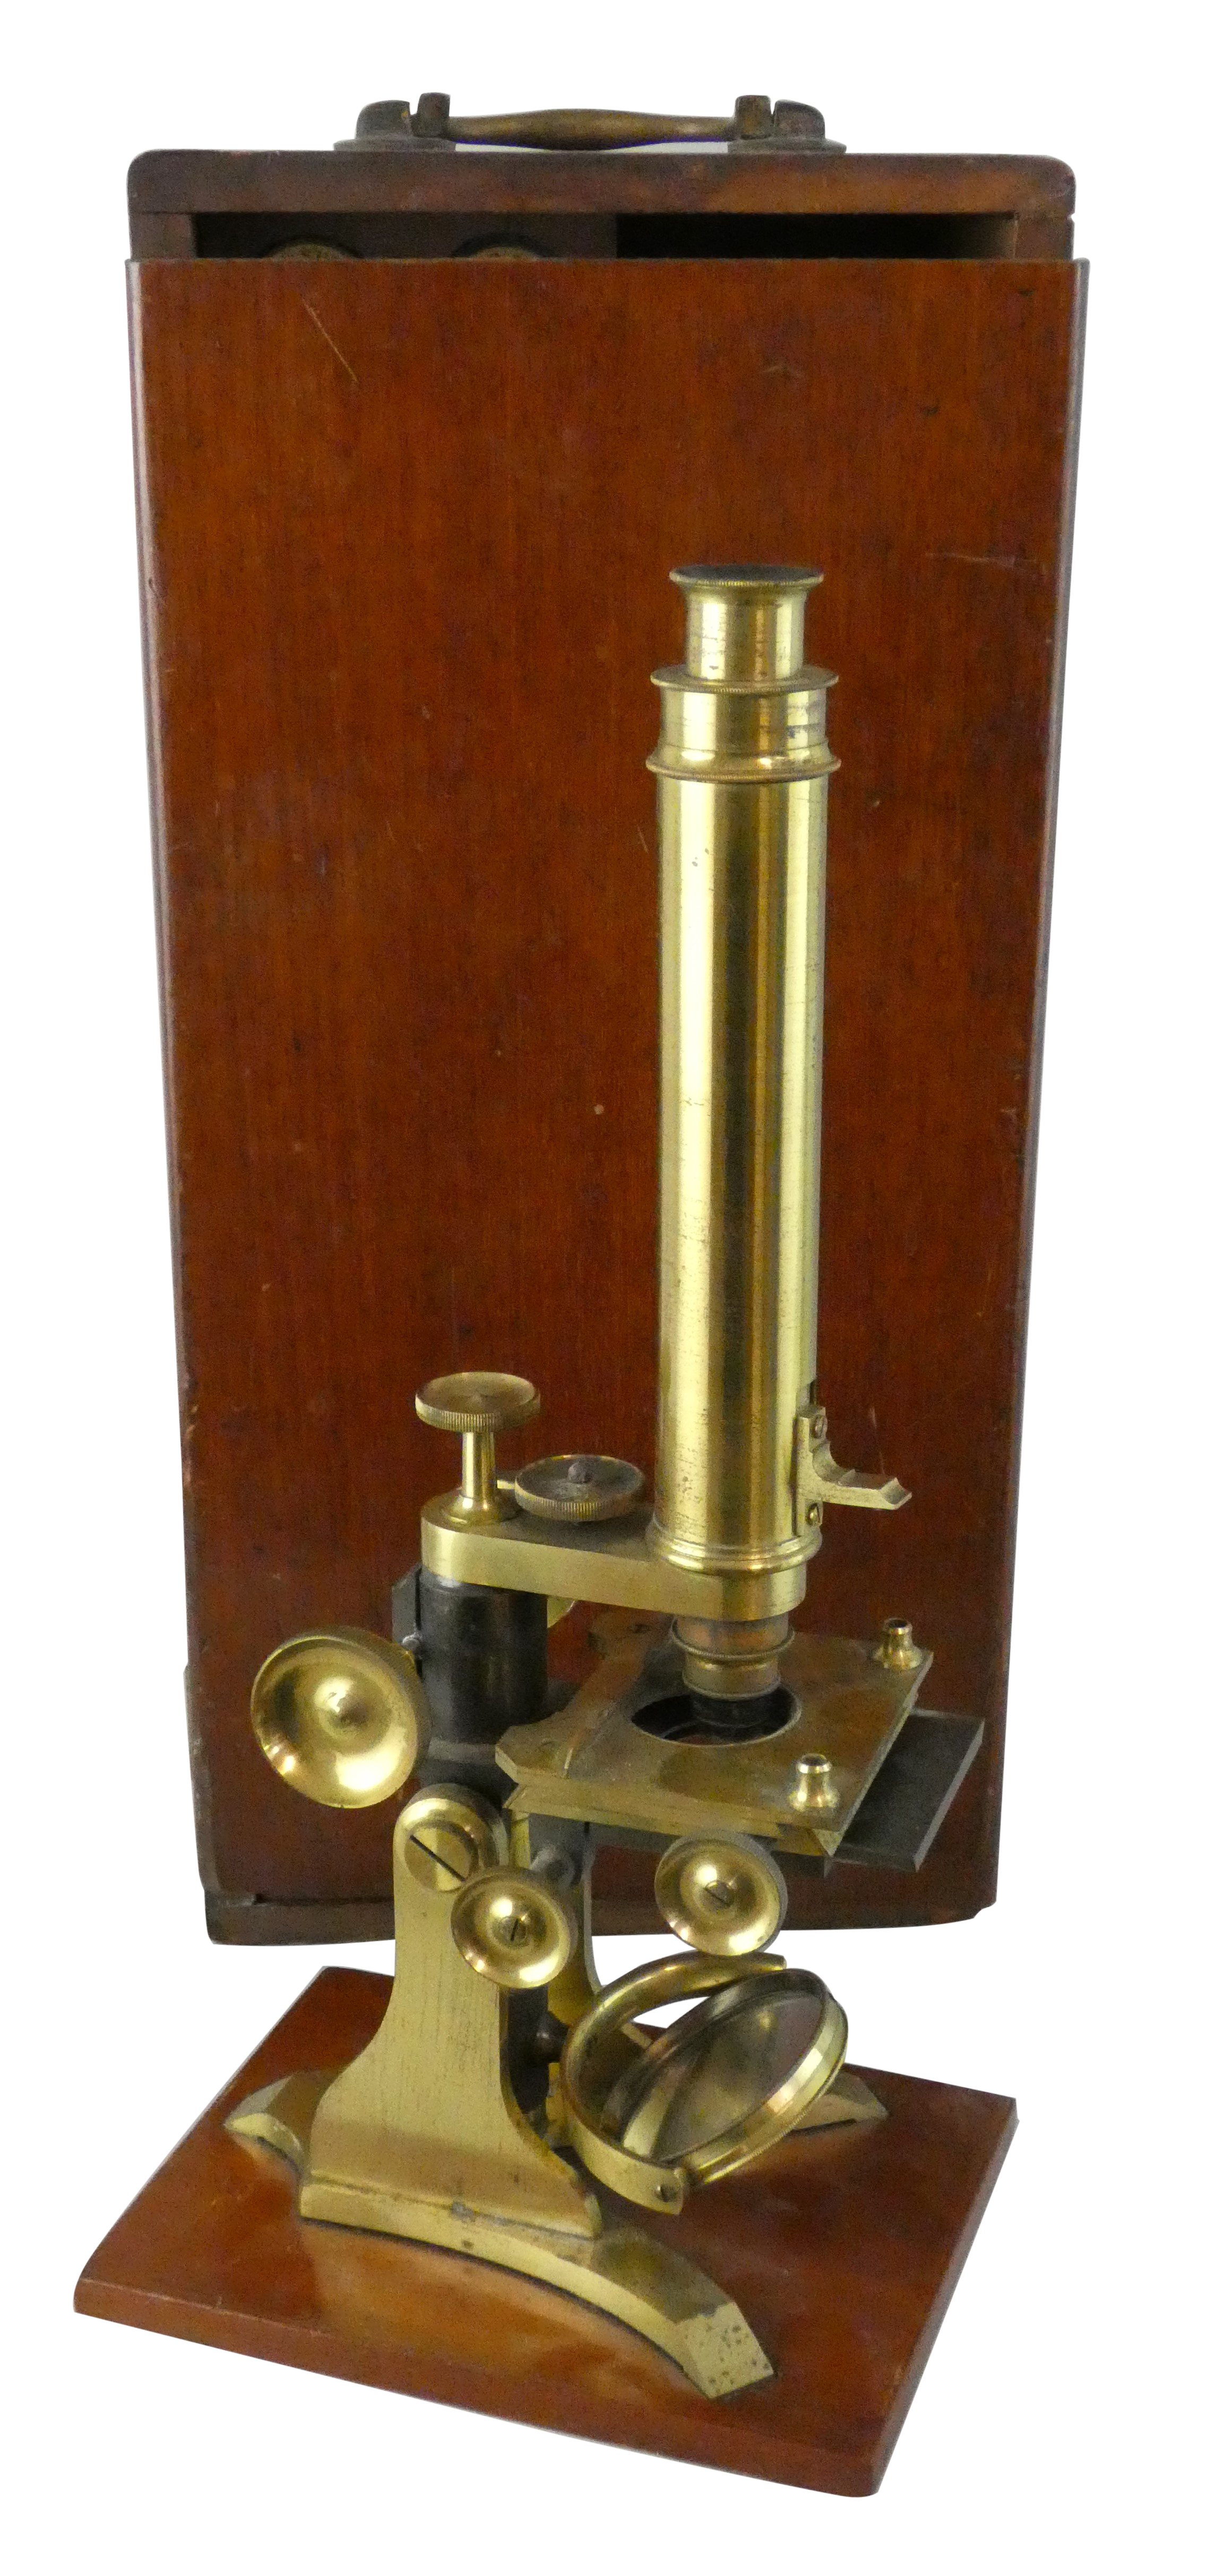 Lot 277 - A Victorian monocular brass microscope, by J.P. Cutts, Sutton & Son, c. 1850 - 1876, with brass